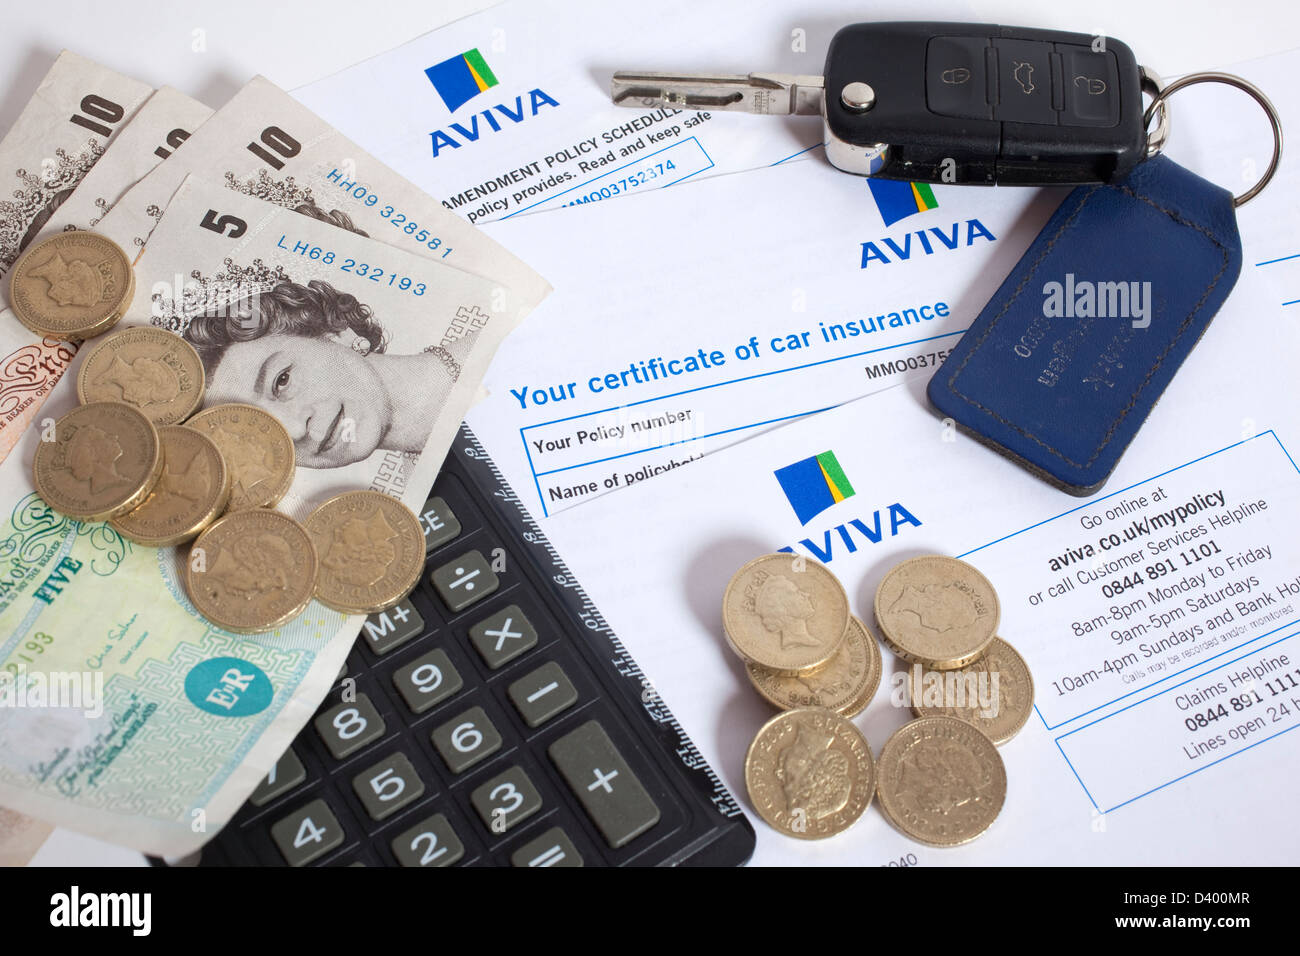 Motor insurance certificate alongside money, keys and calculator - Stock Image